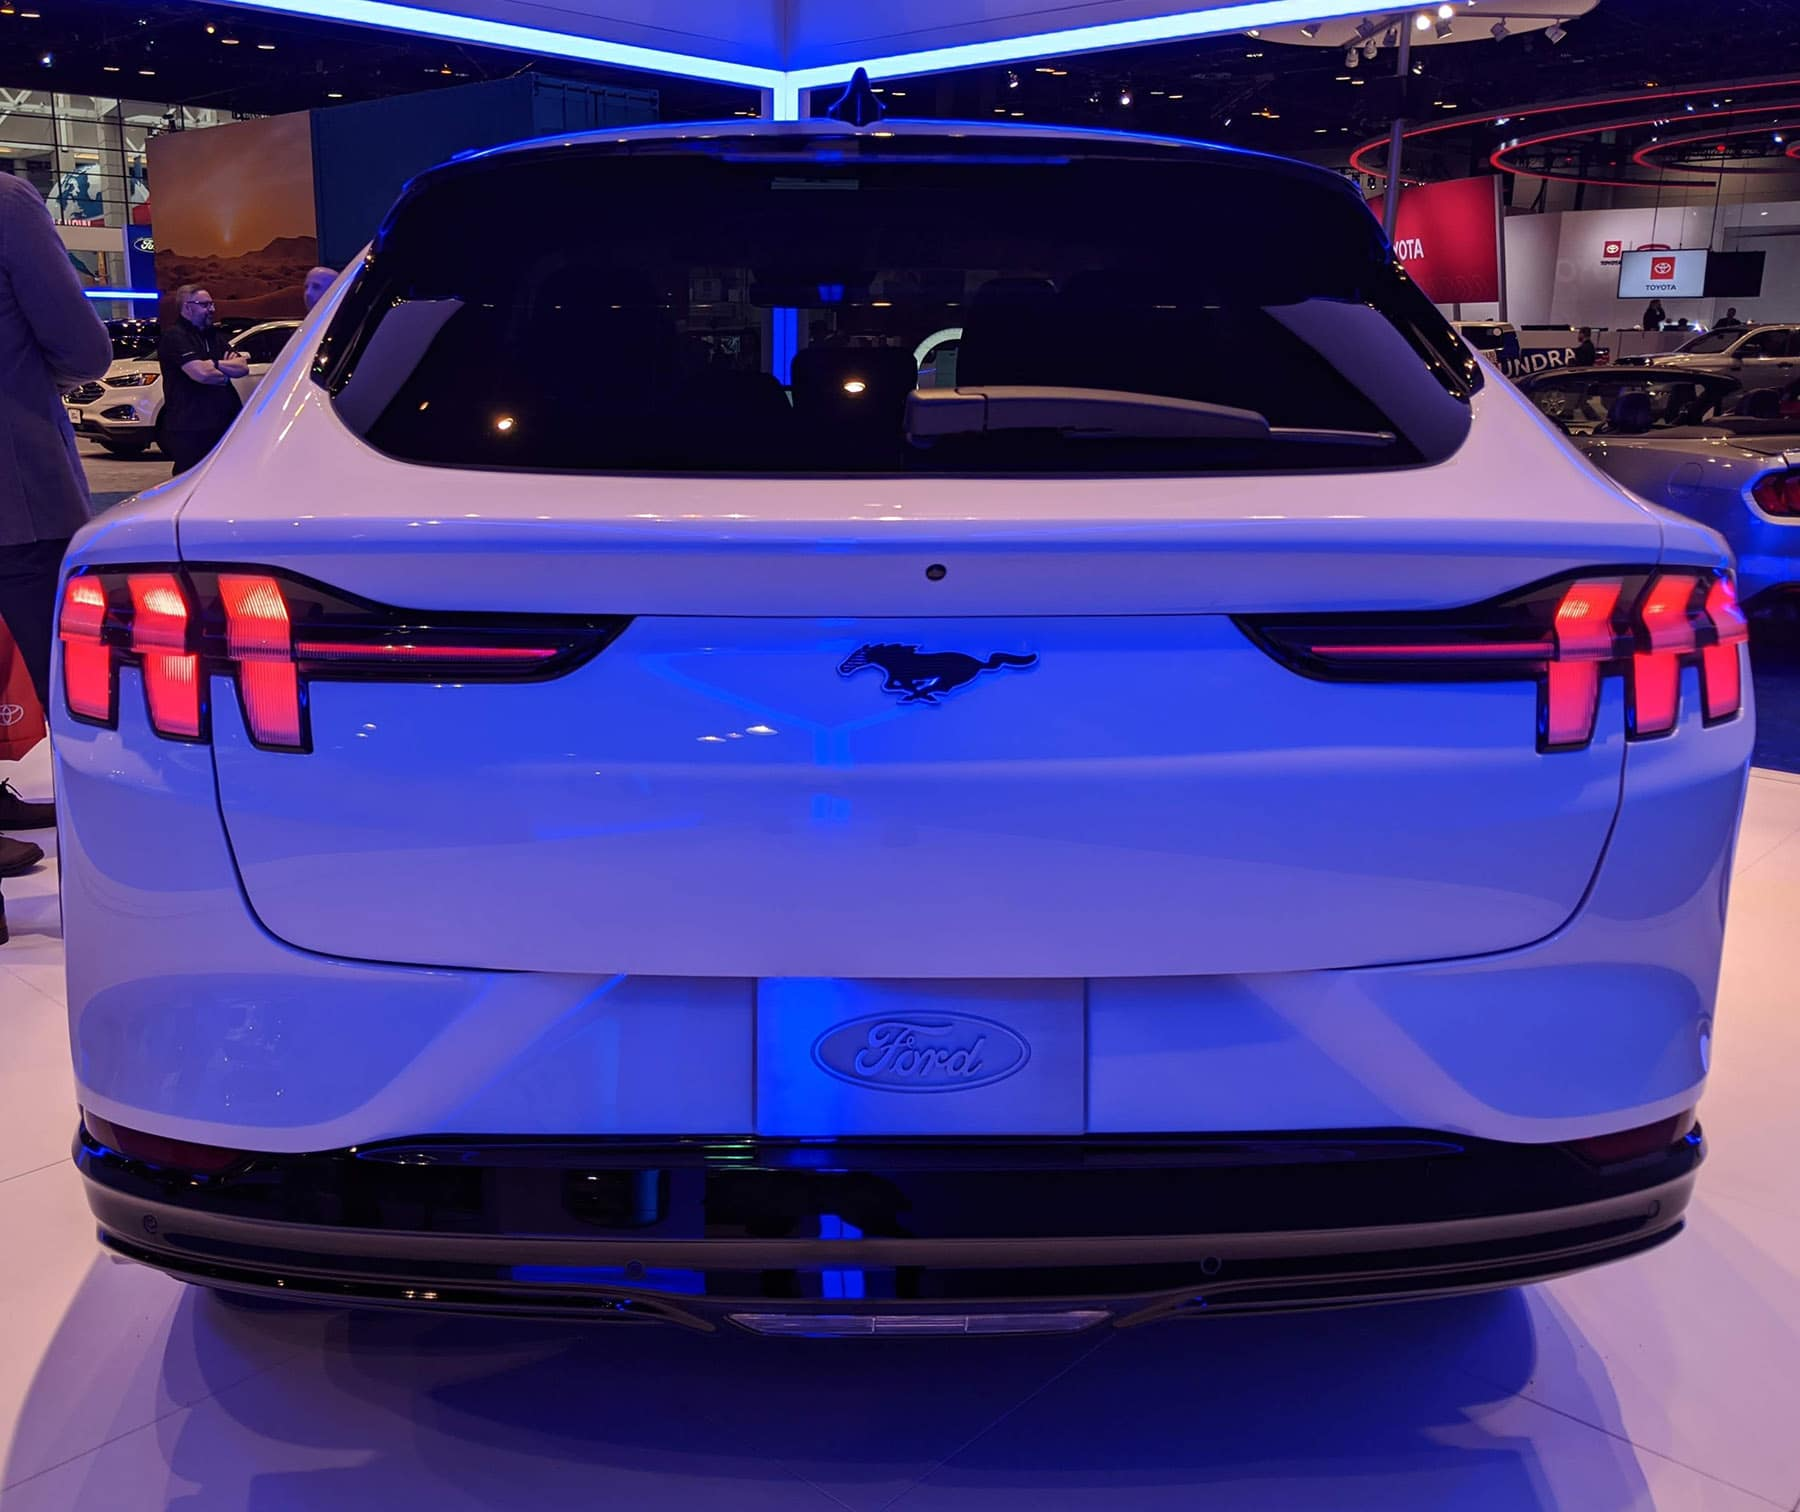 2021 Mustang Mach-E rear view at 2020 Chicago Auto Show